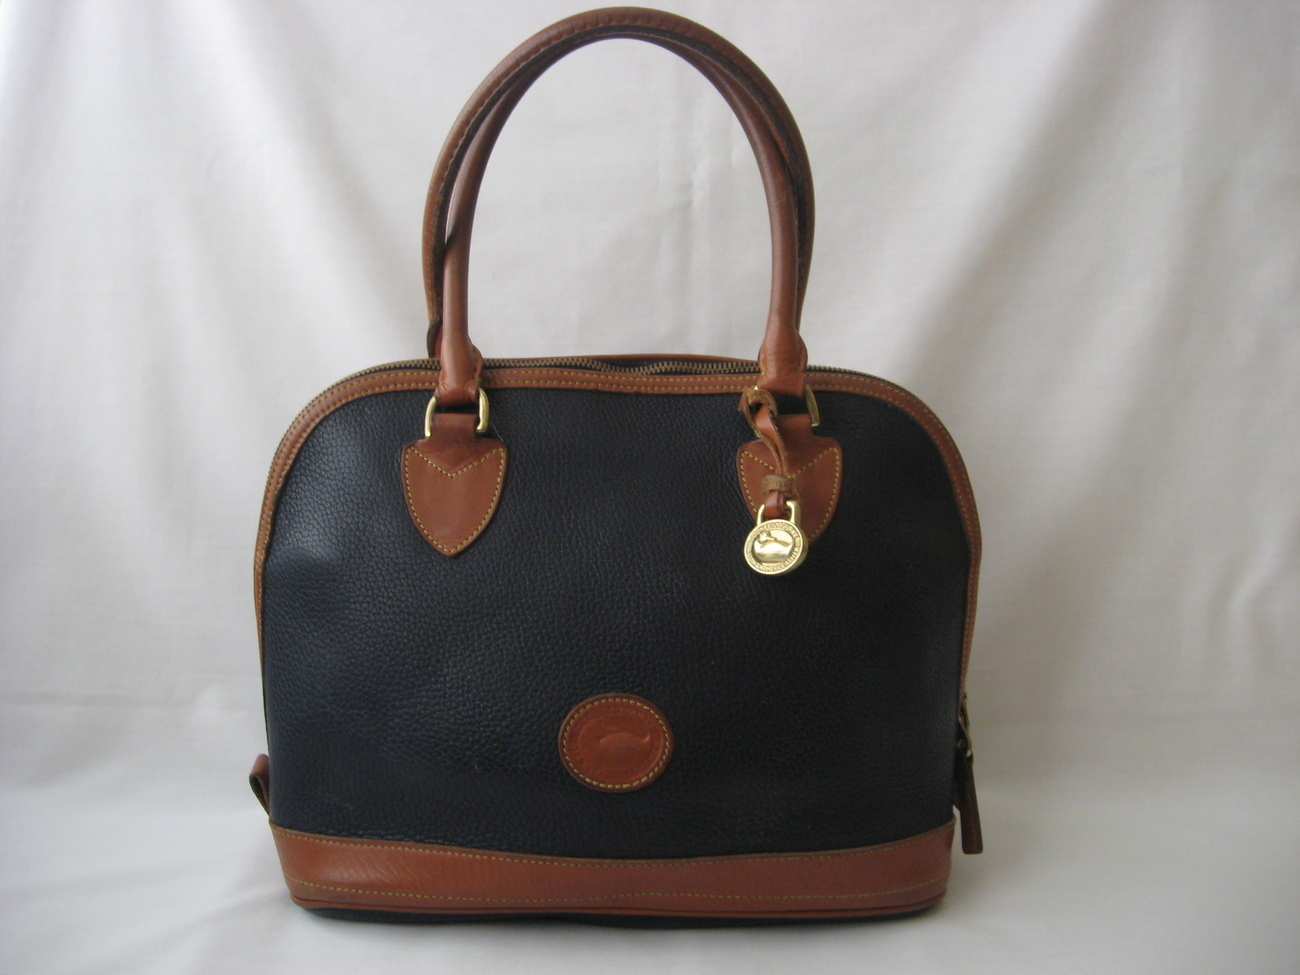 Dooney & Bourke Bags This blog is a labor of love of vintage All Weather Leather Dooneys and I am always glad to help with identifying and authenticating bags free of charge. It is my way of contributing to the knowledge base out there in hopes it helps prevent fraudulent sales from occurring.